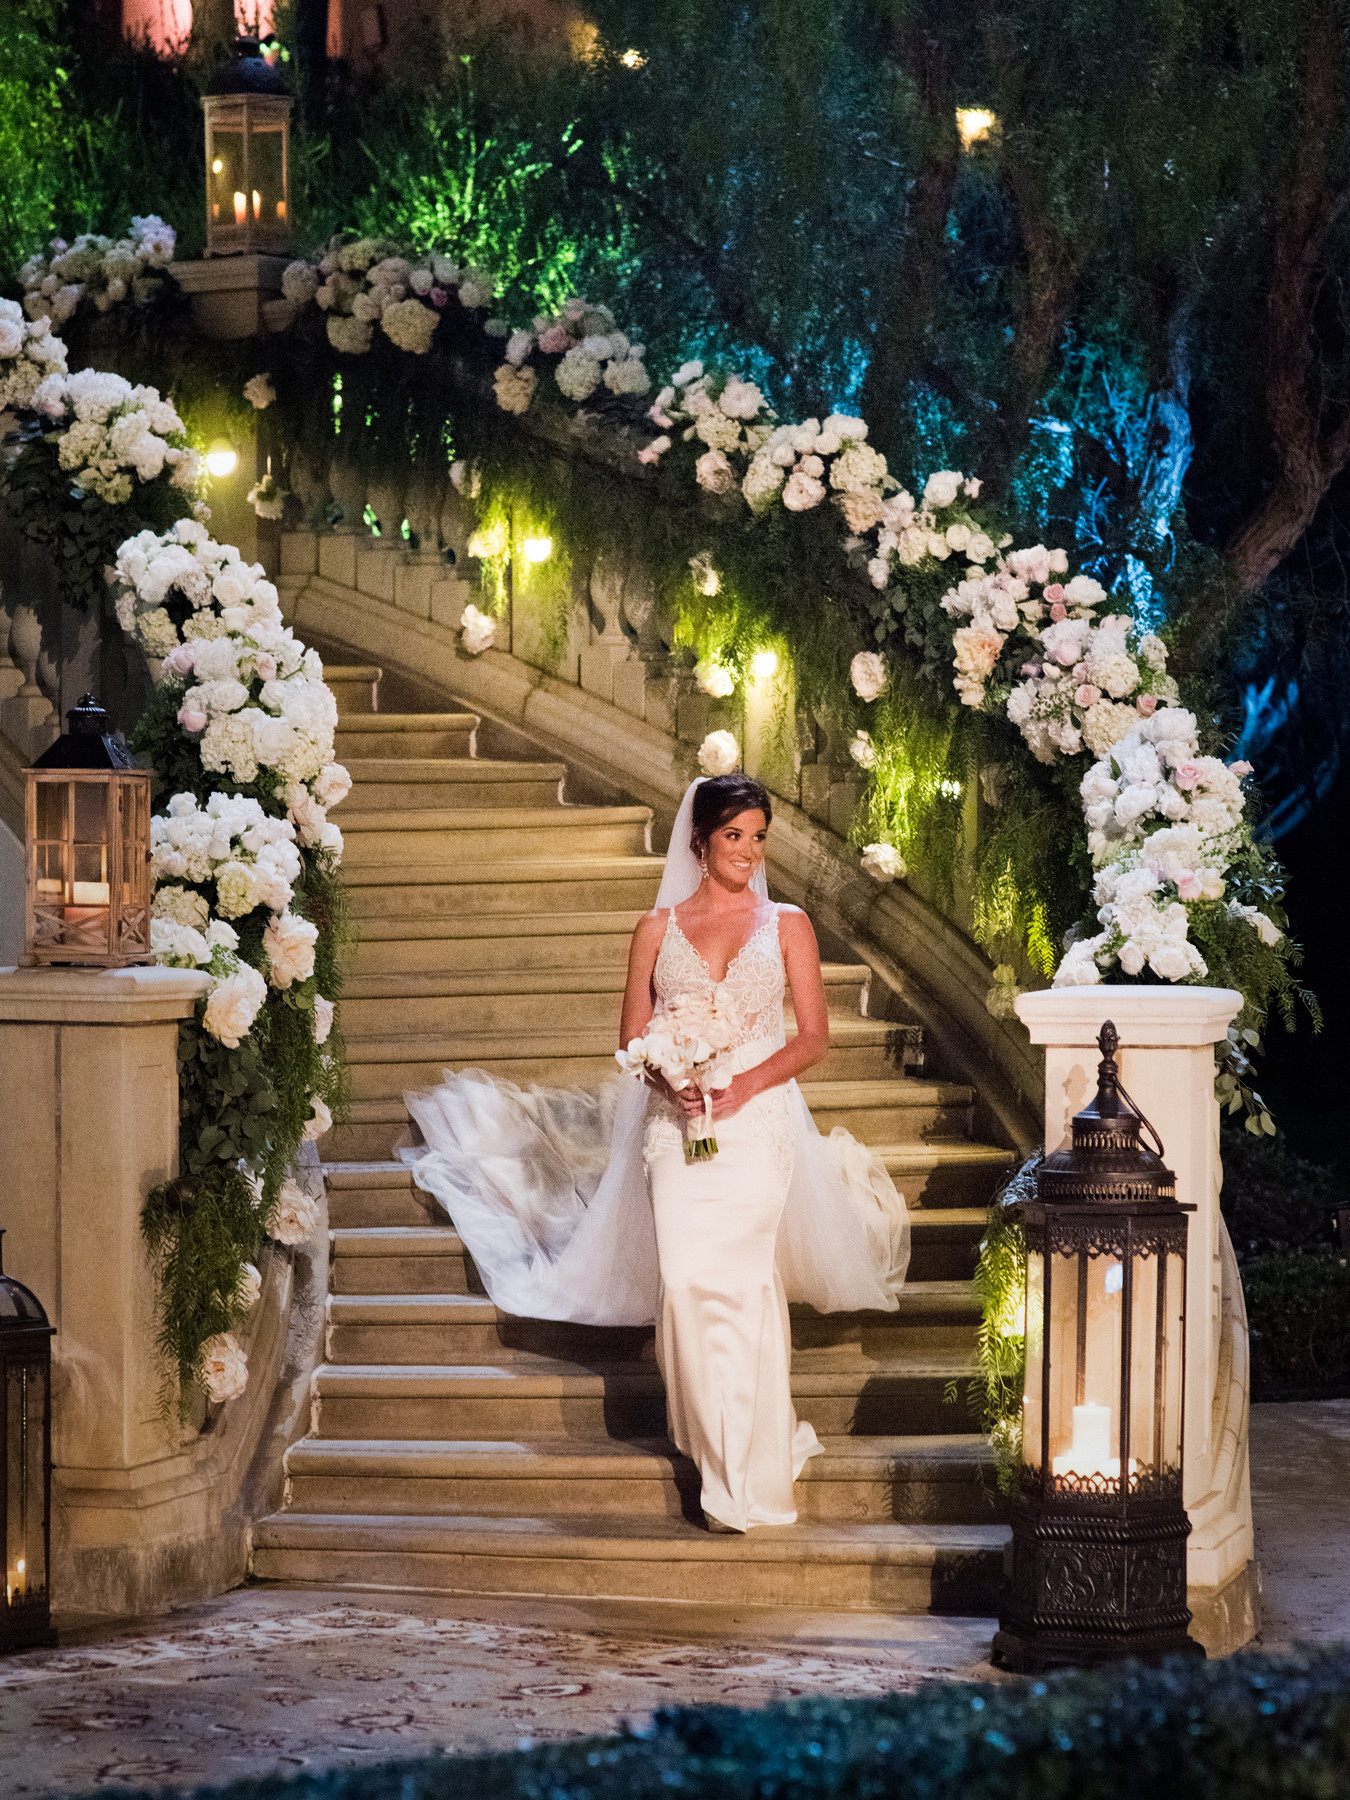 Jade Roper comes down the aisle at St. Regis Monarch Beach - photo by John and Joseph